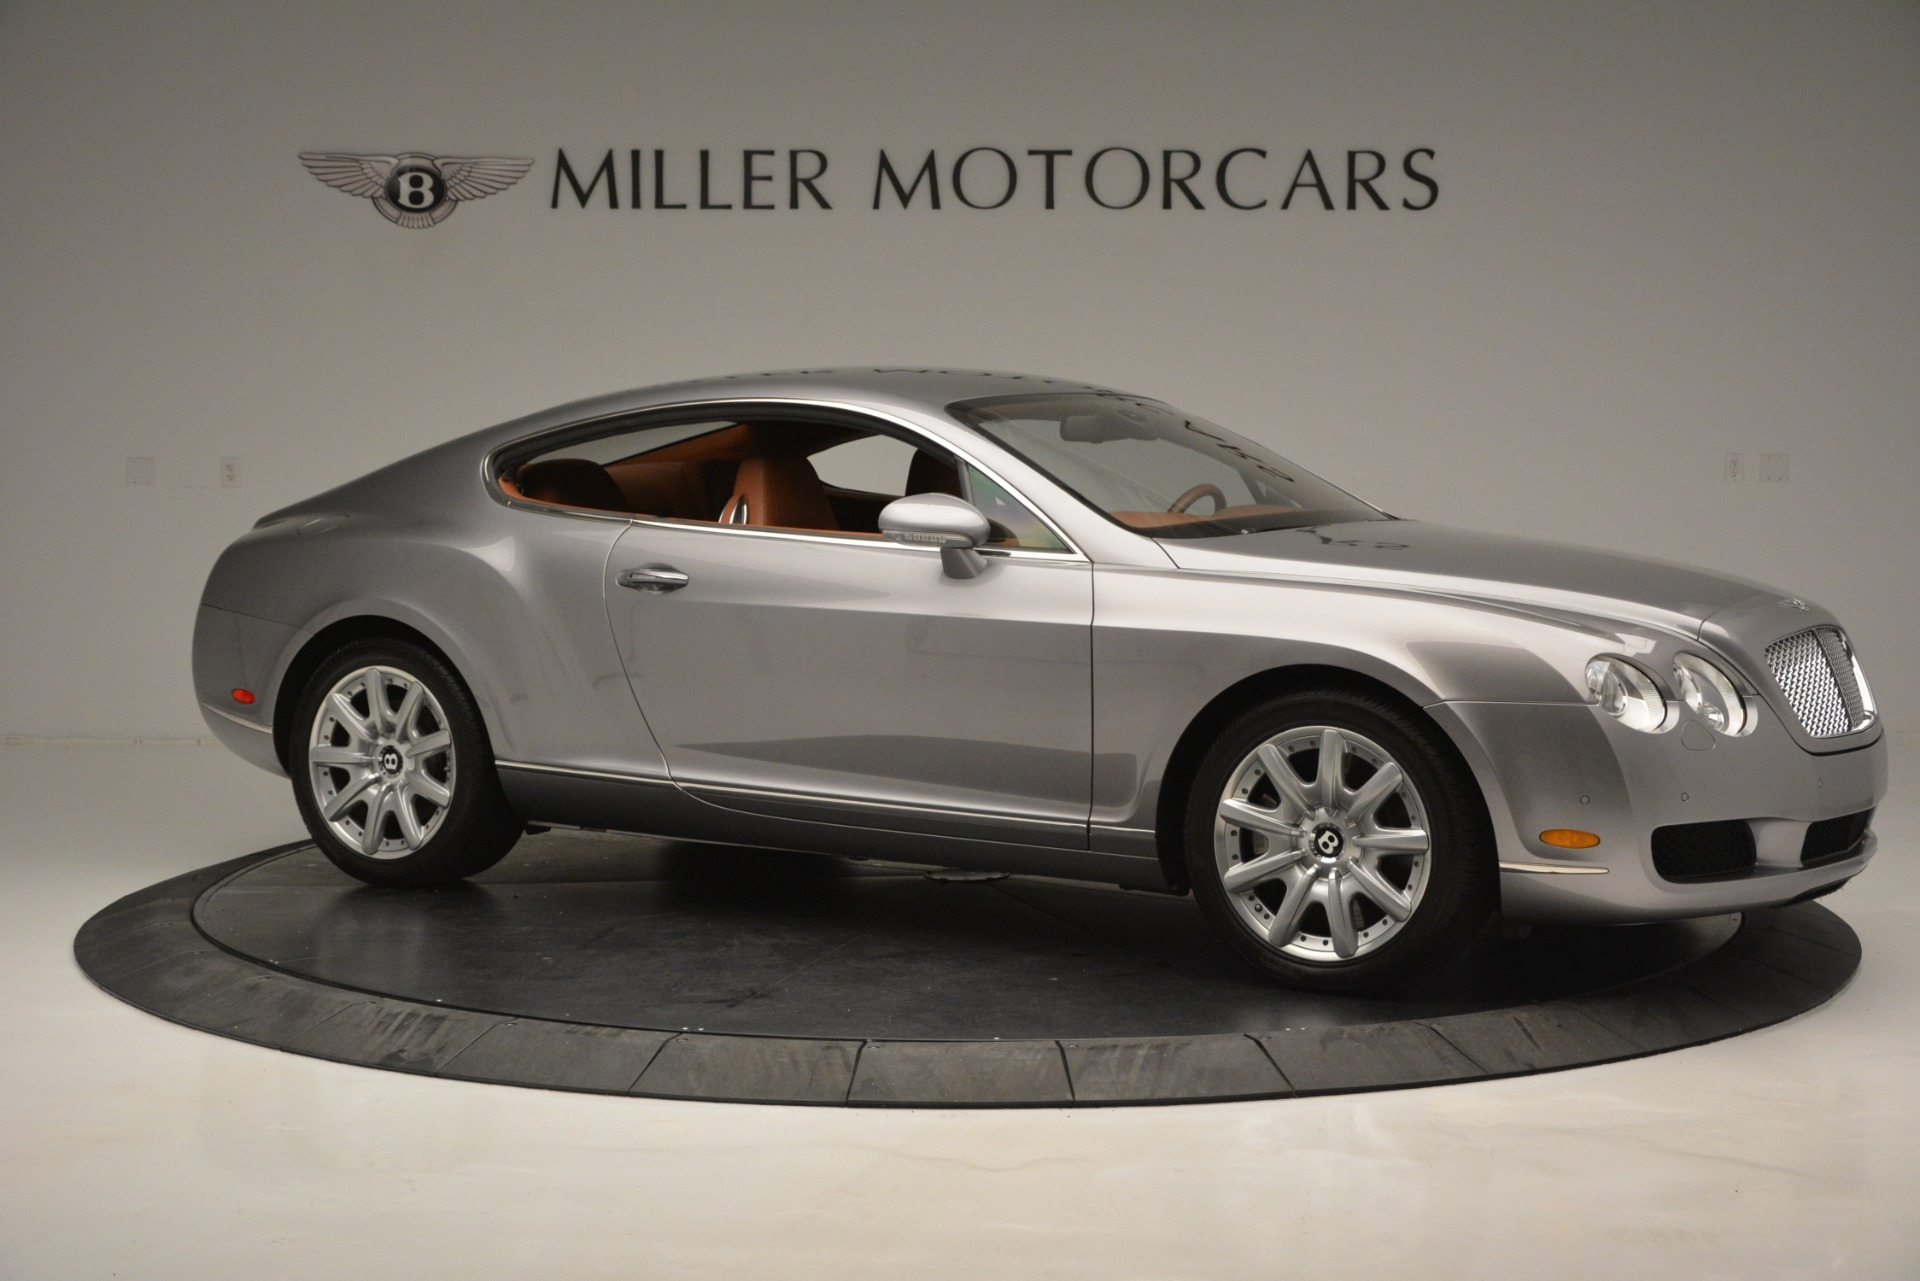 Used 2005 Bentley Continental GT GT Turbo For Sale In Greenwich, CT 2726_p10